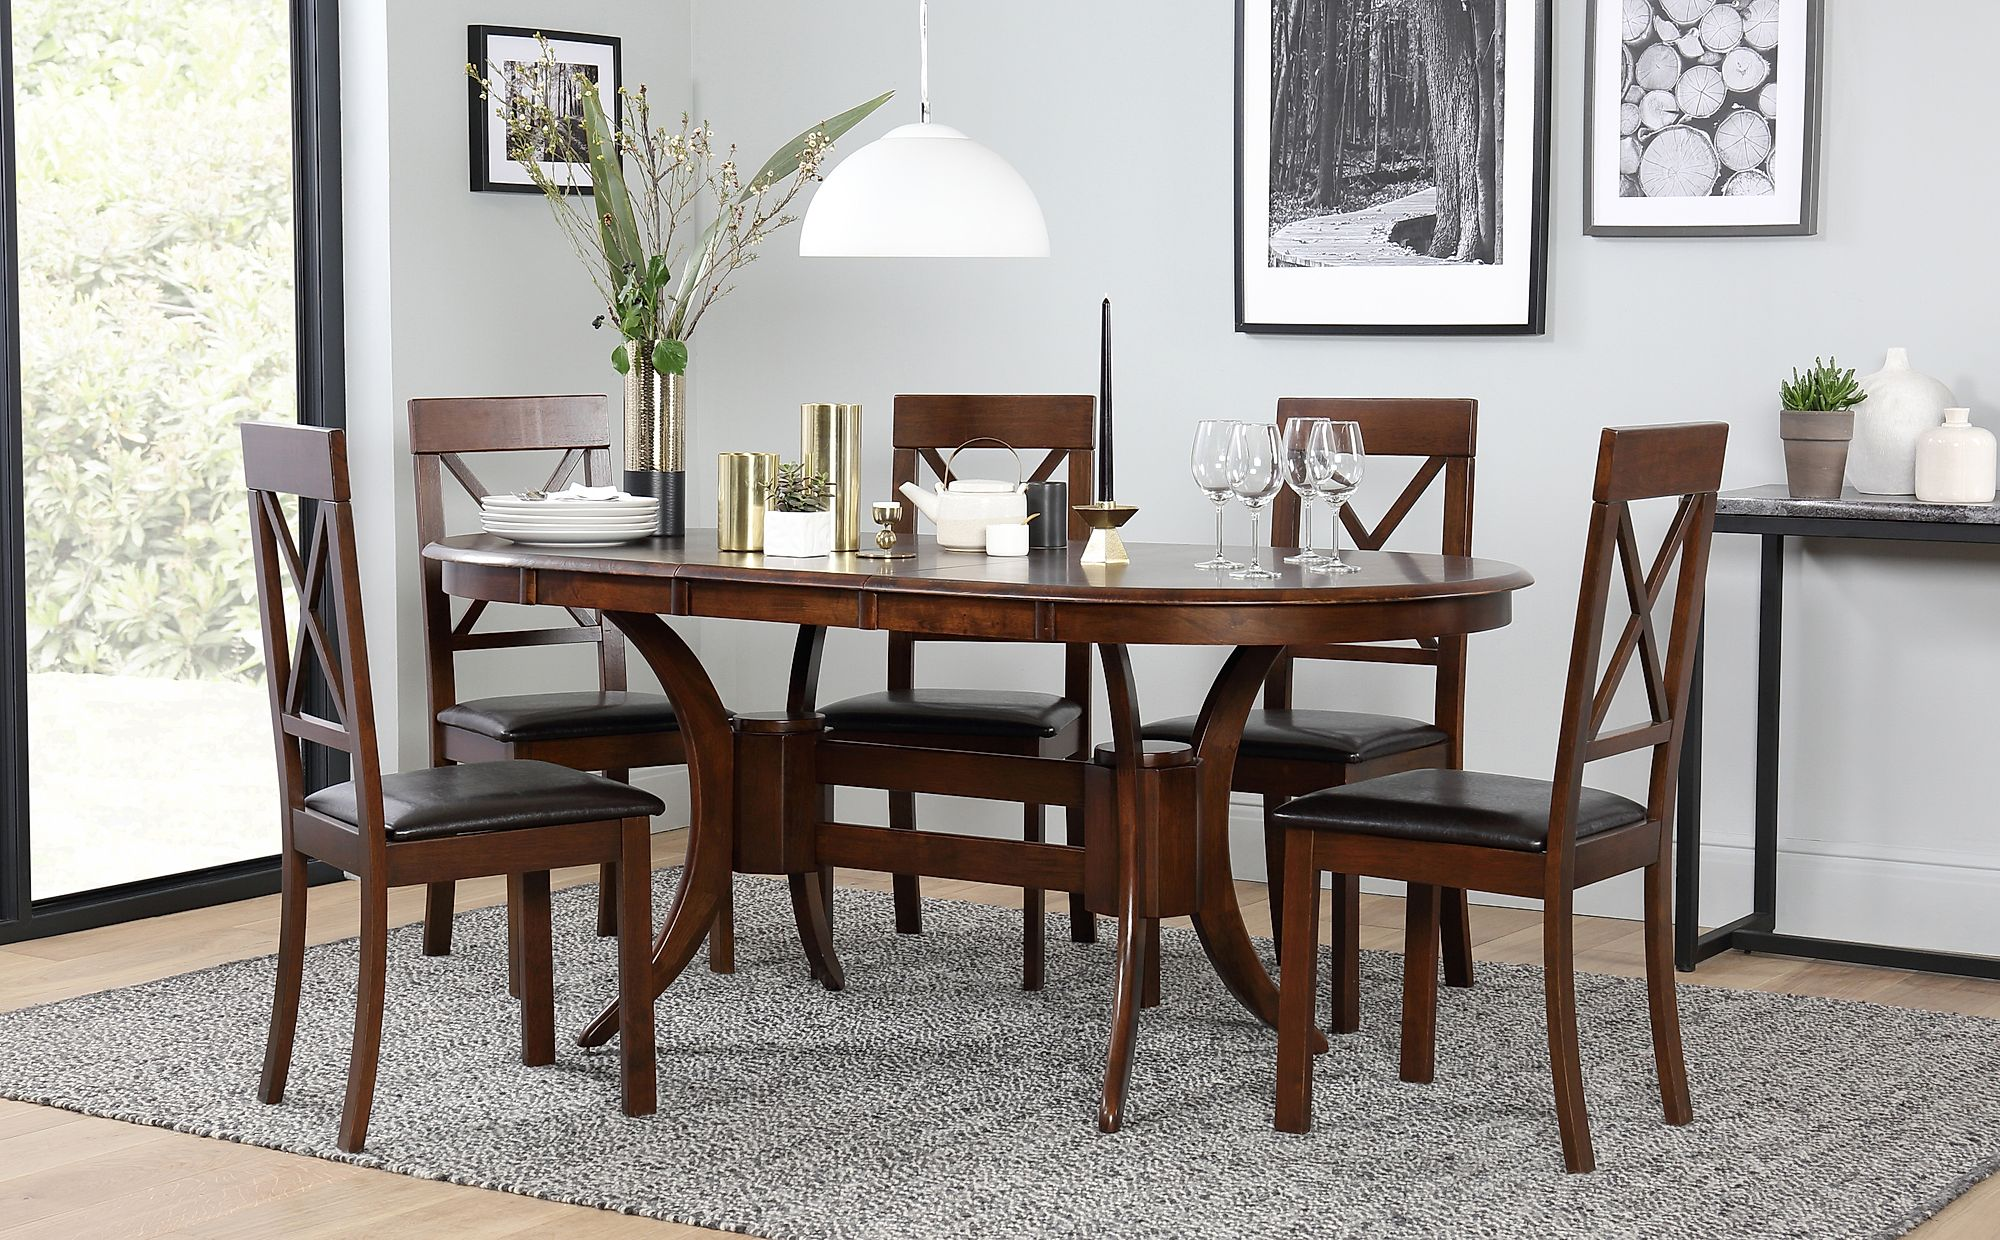 Townhouse Oval Dark Wood Extending Dining Table With 4